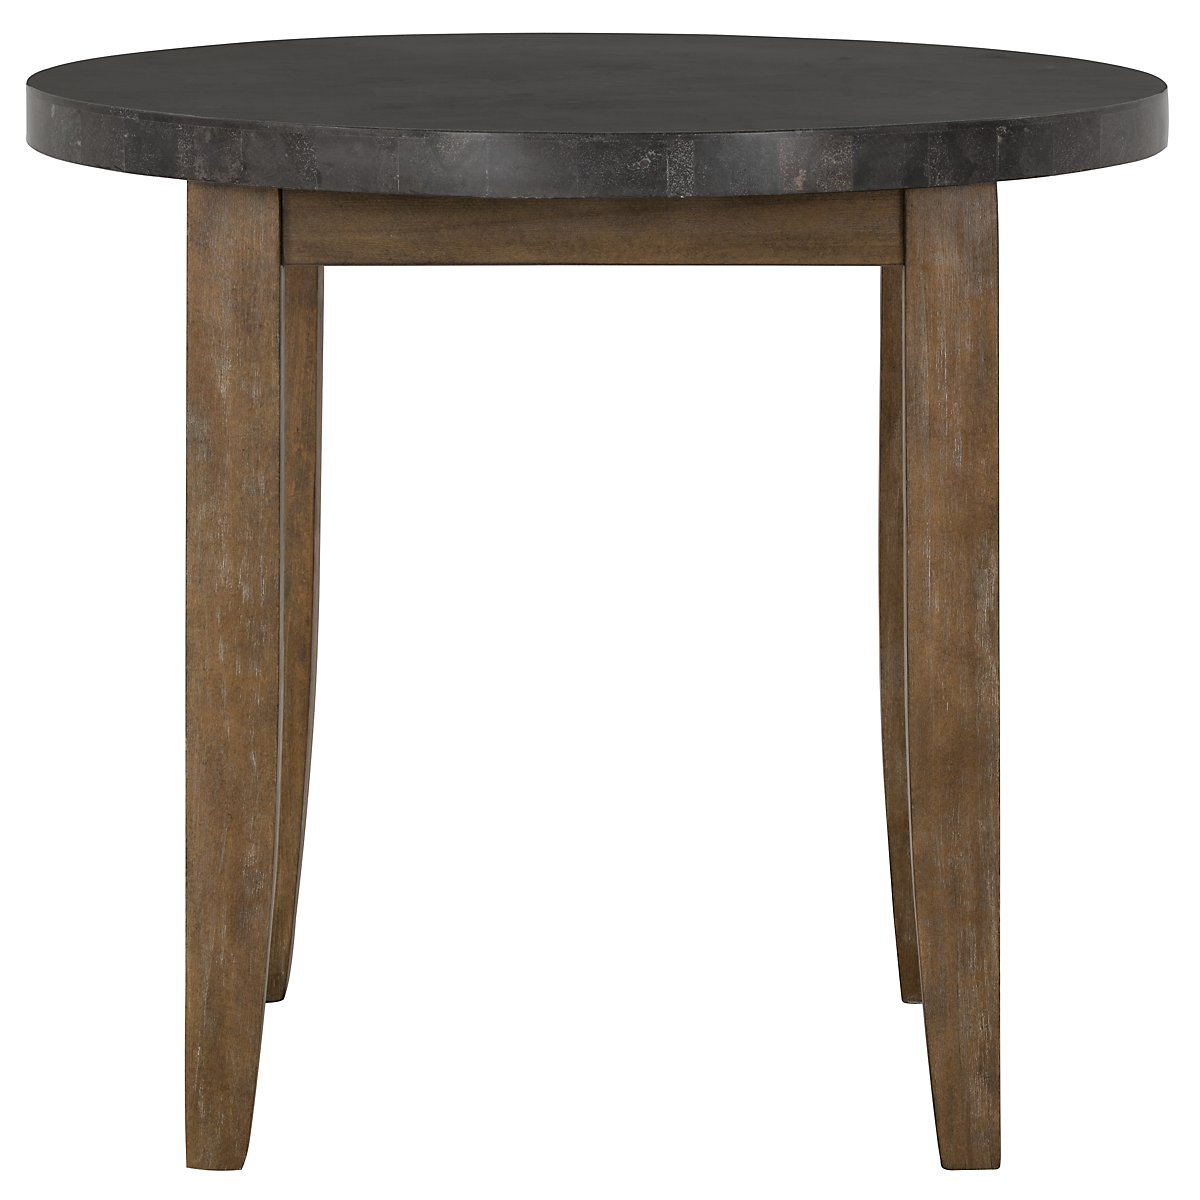 City furniture emmett stone round high dining table for High dining table